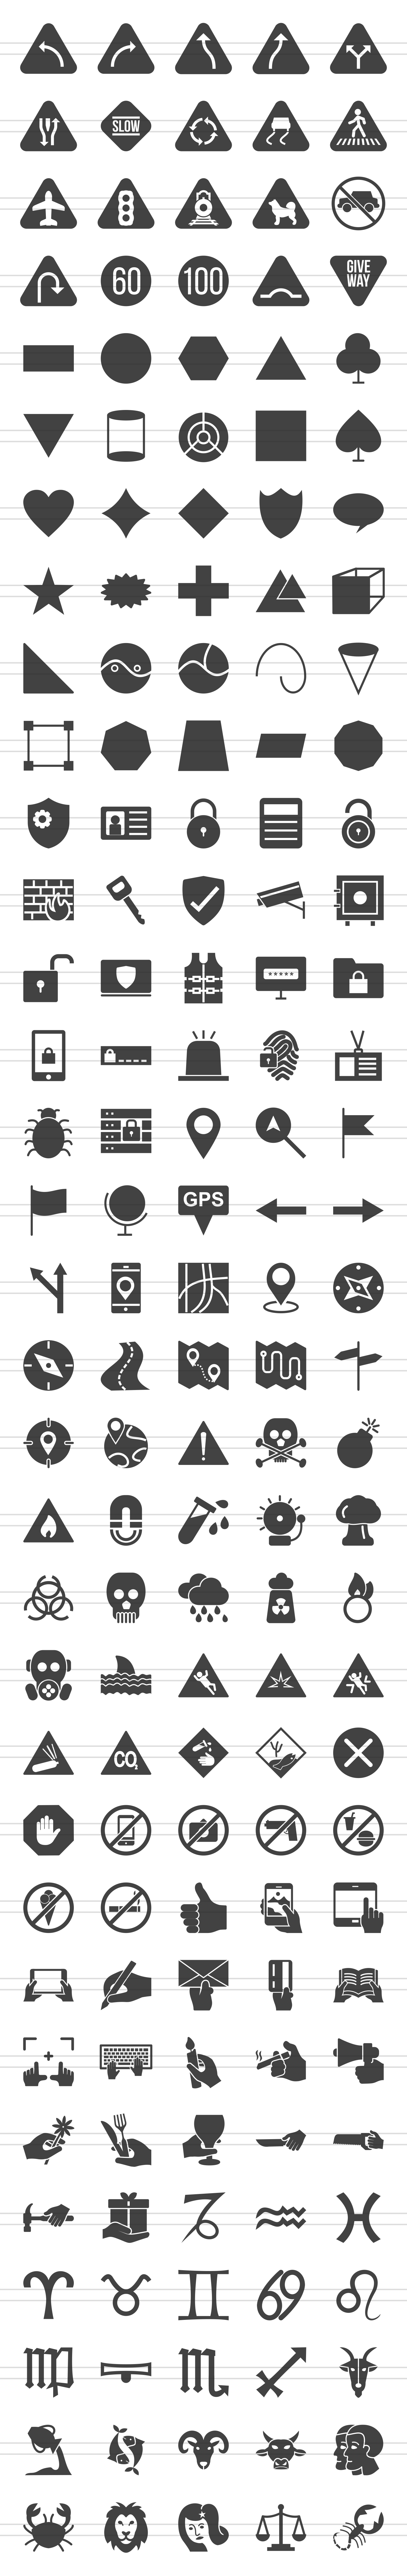 166 Sign Glyph Icons example image 2